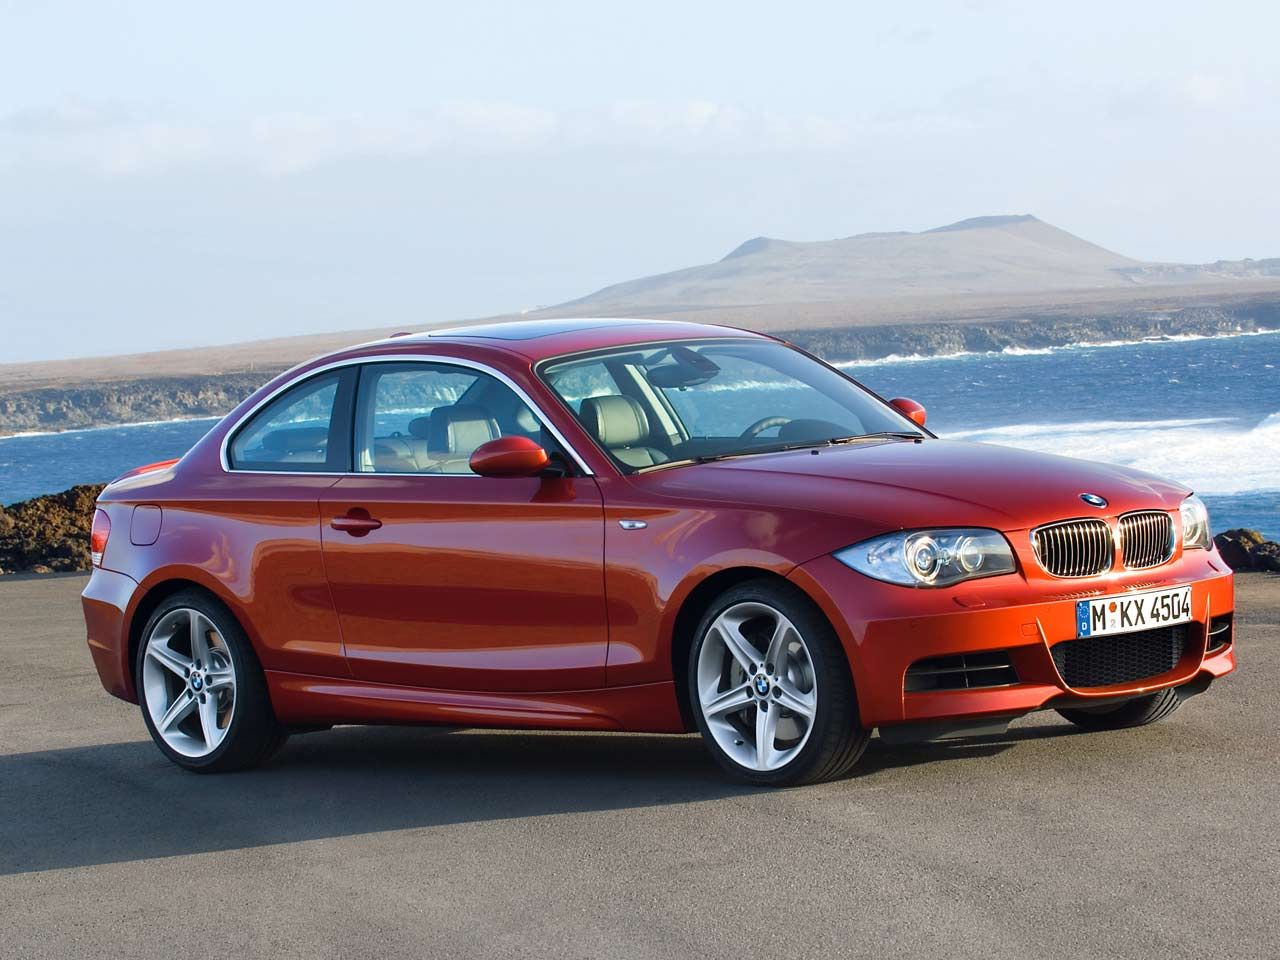 500hp With Turbo Upgrade Kit For The Bmw 135i